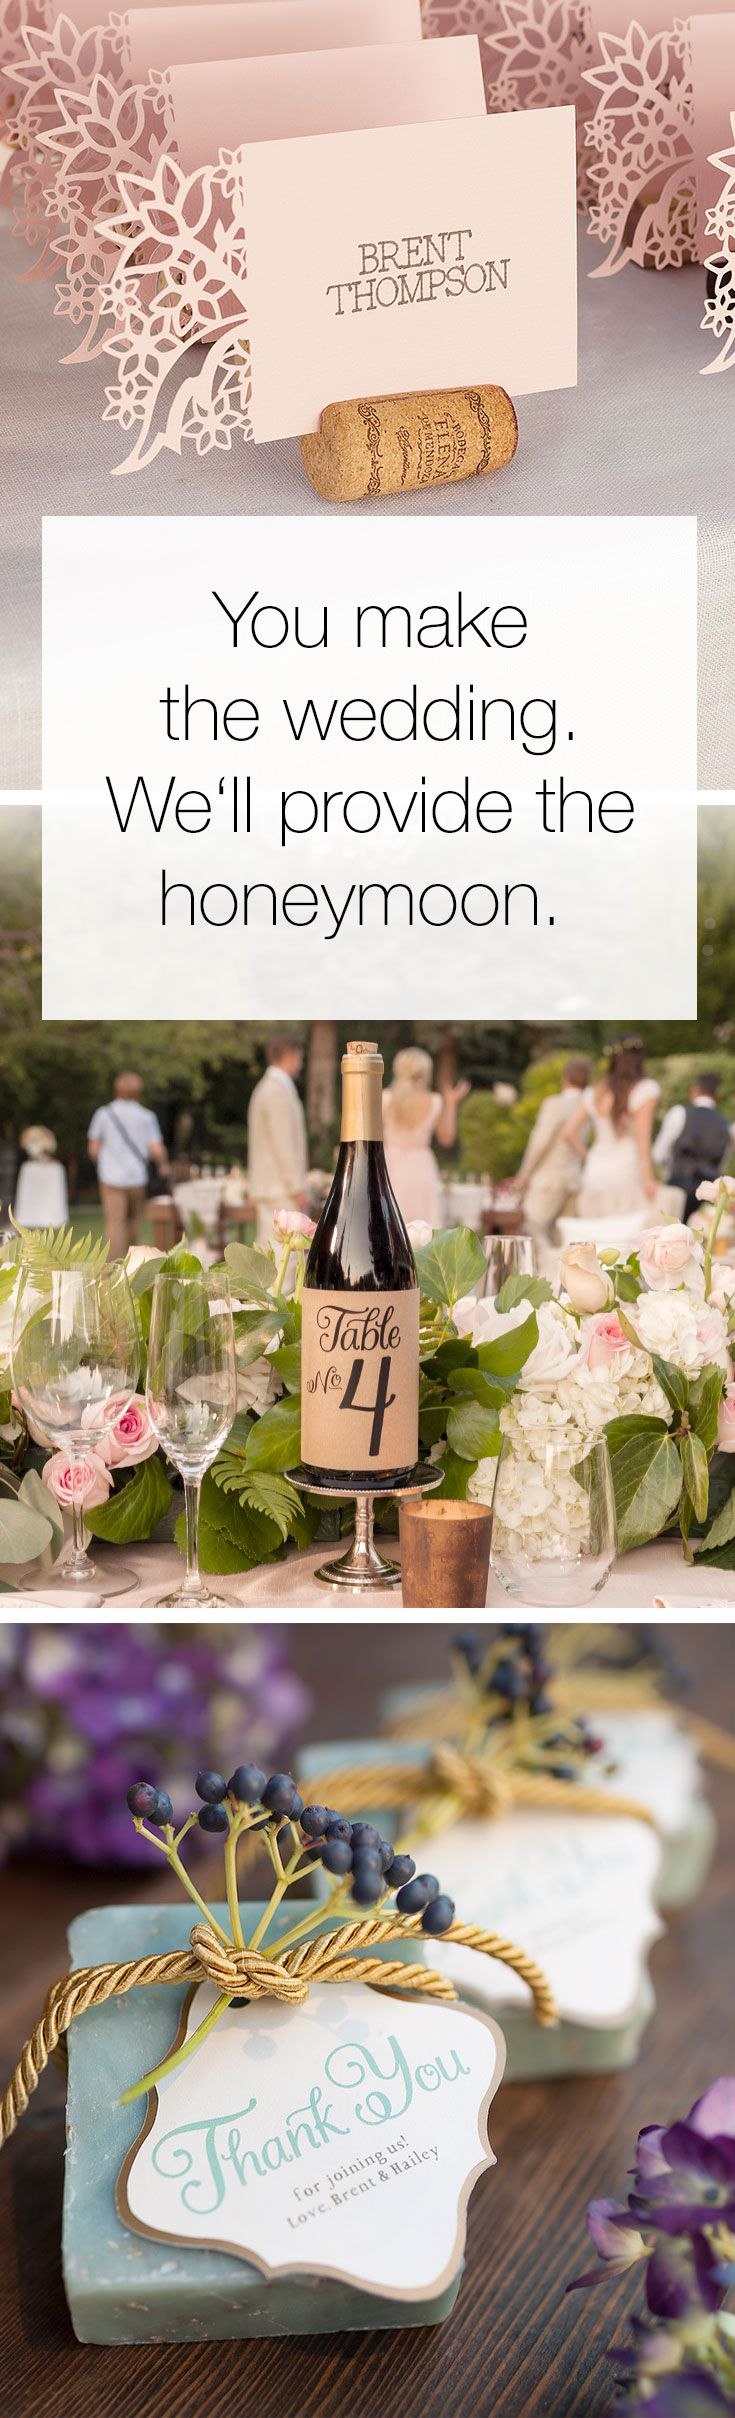 Wedding decorations made with cricut october 2018  best in the future images on Pinterest  Wedding ideas